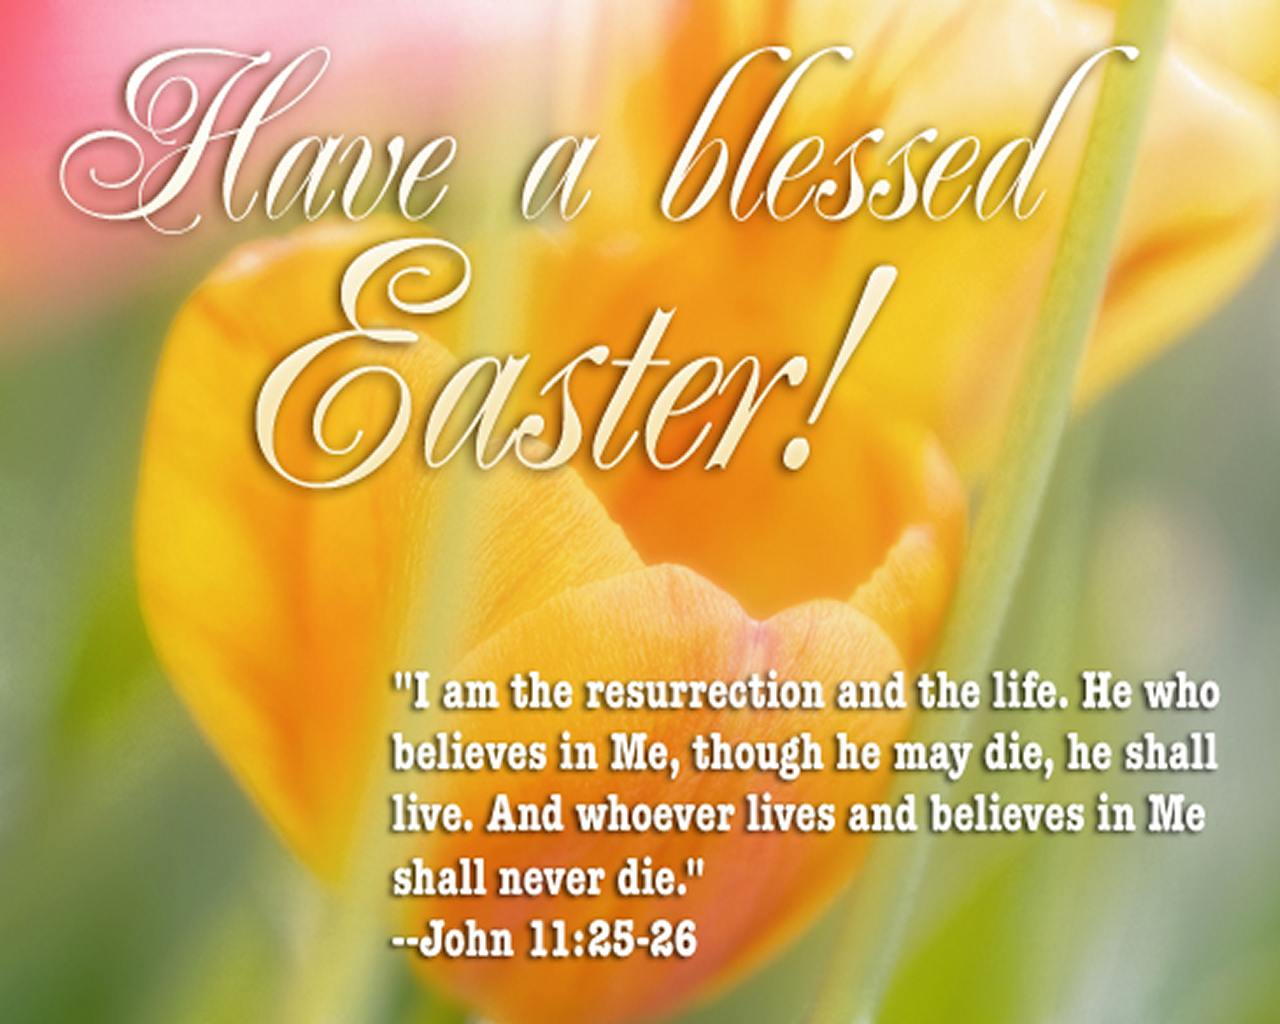 Easter weekend quotes and saying